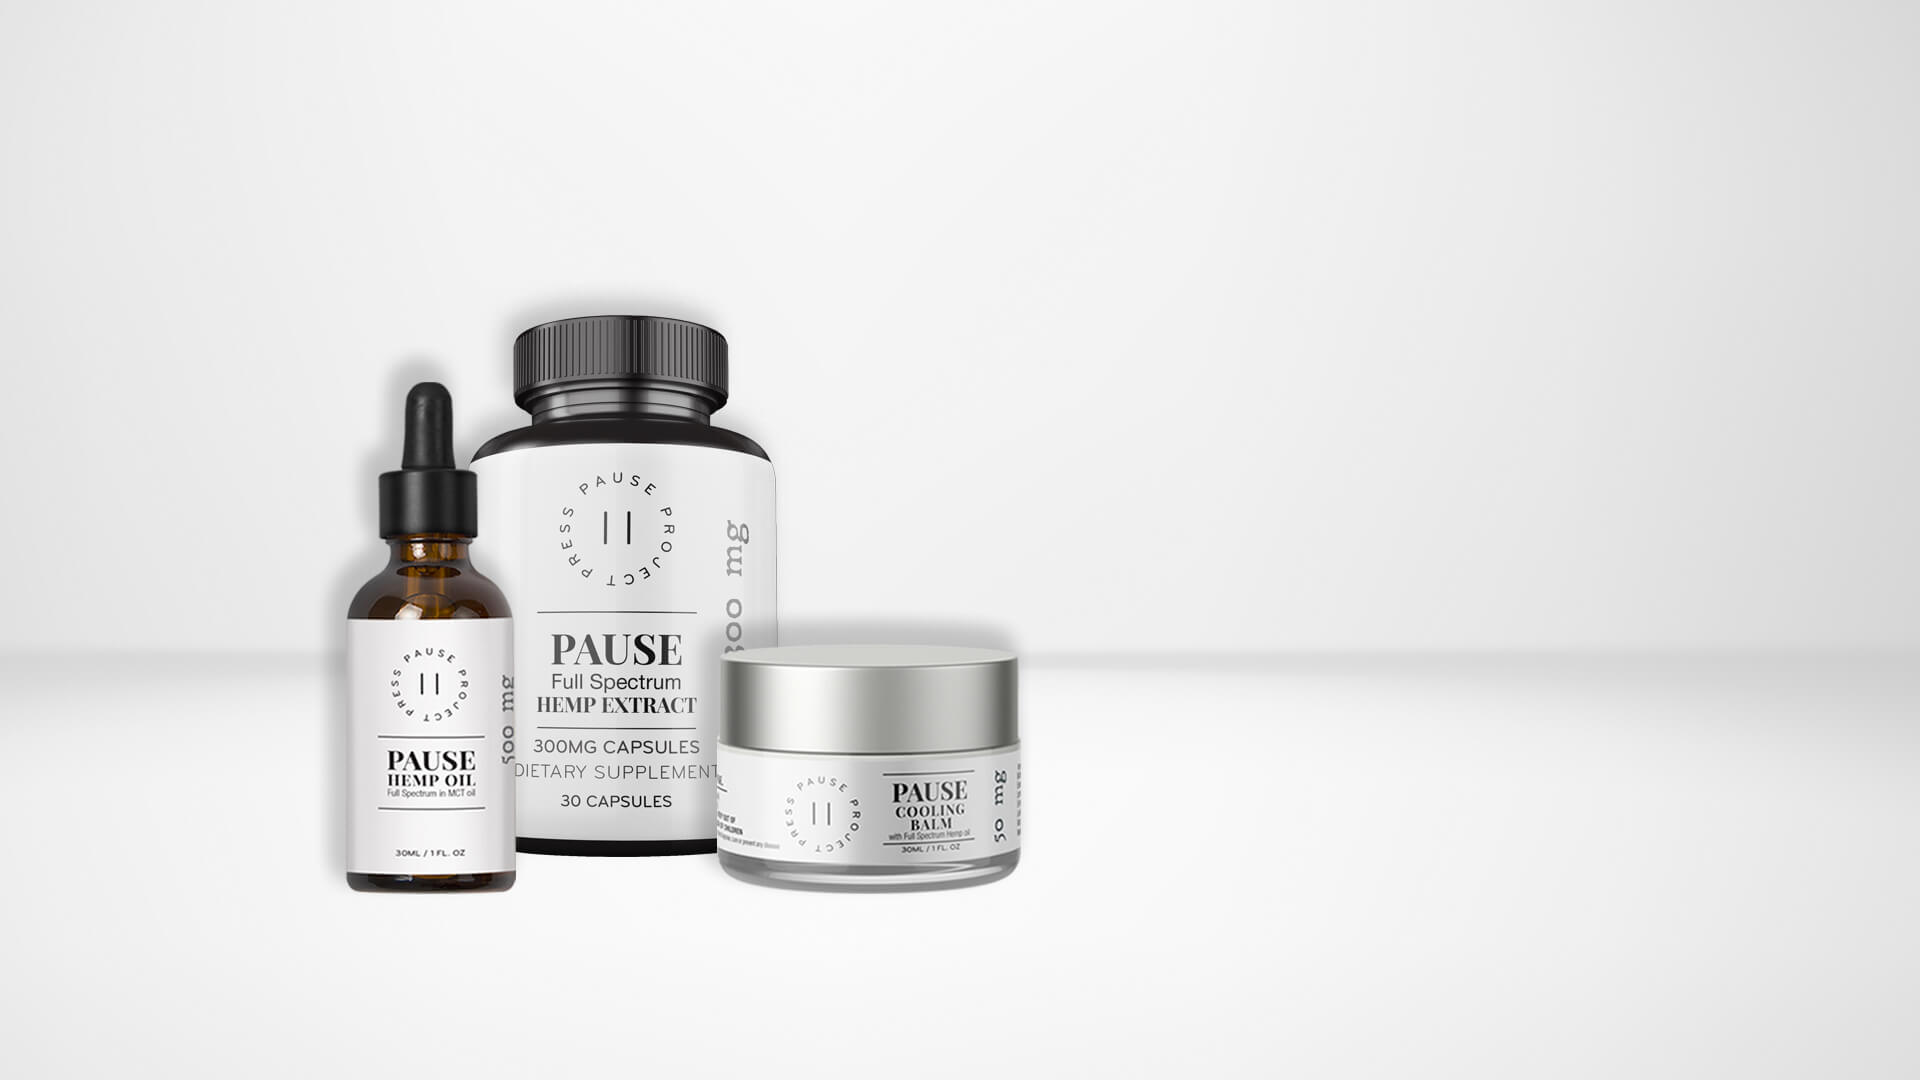 Press pause project - Founded by two women who are learning to embrace imperfection, Press Pause balms, oils, and supplements were designed with organic ingredients to Press Pause when life starts to spin wildly out of control.presspause.com @presspauseproject